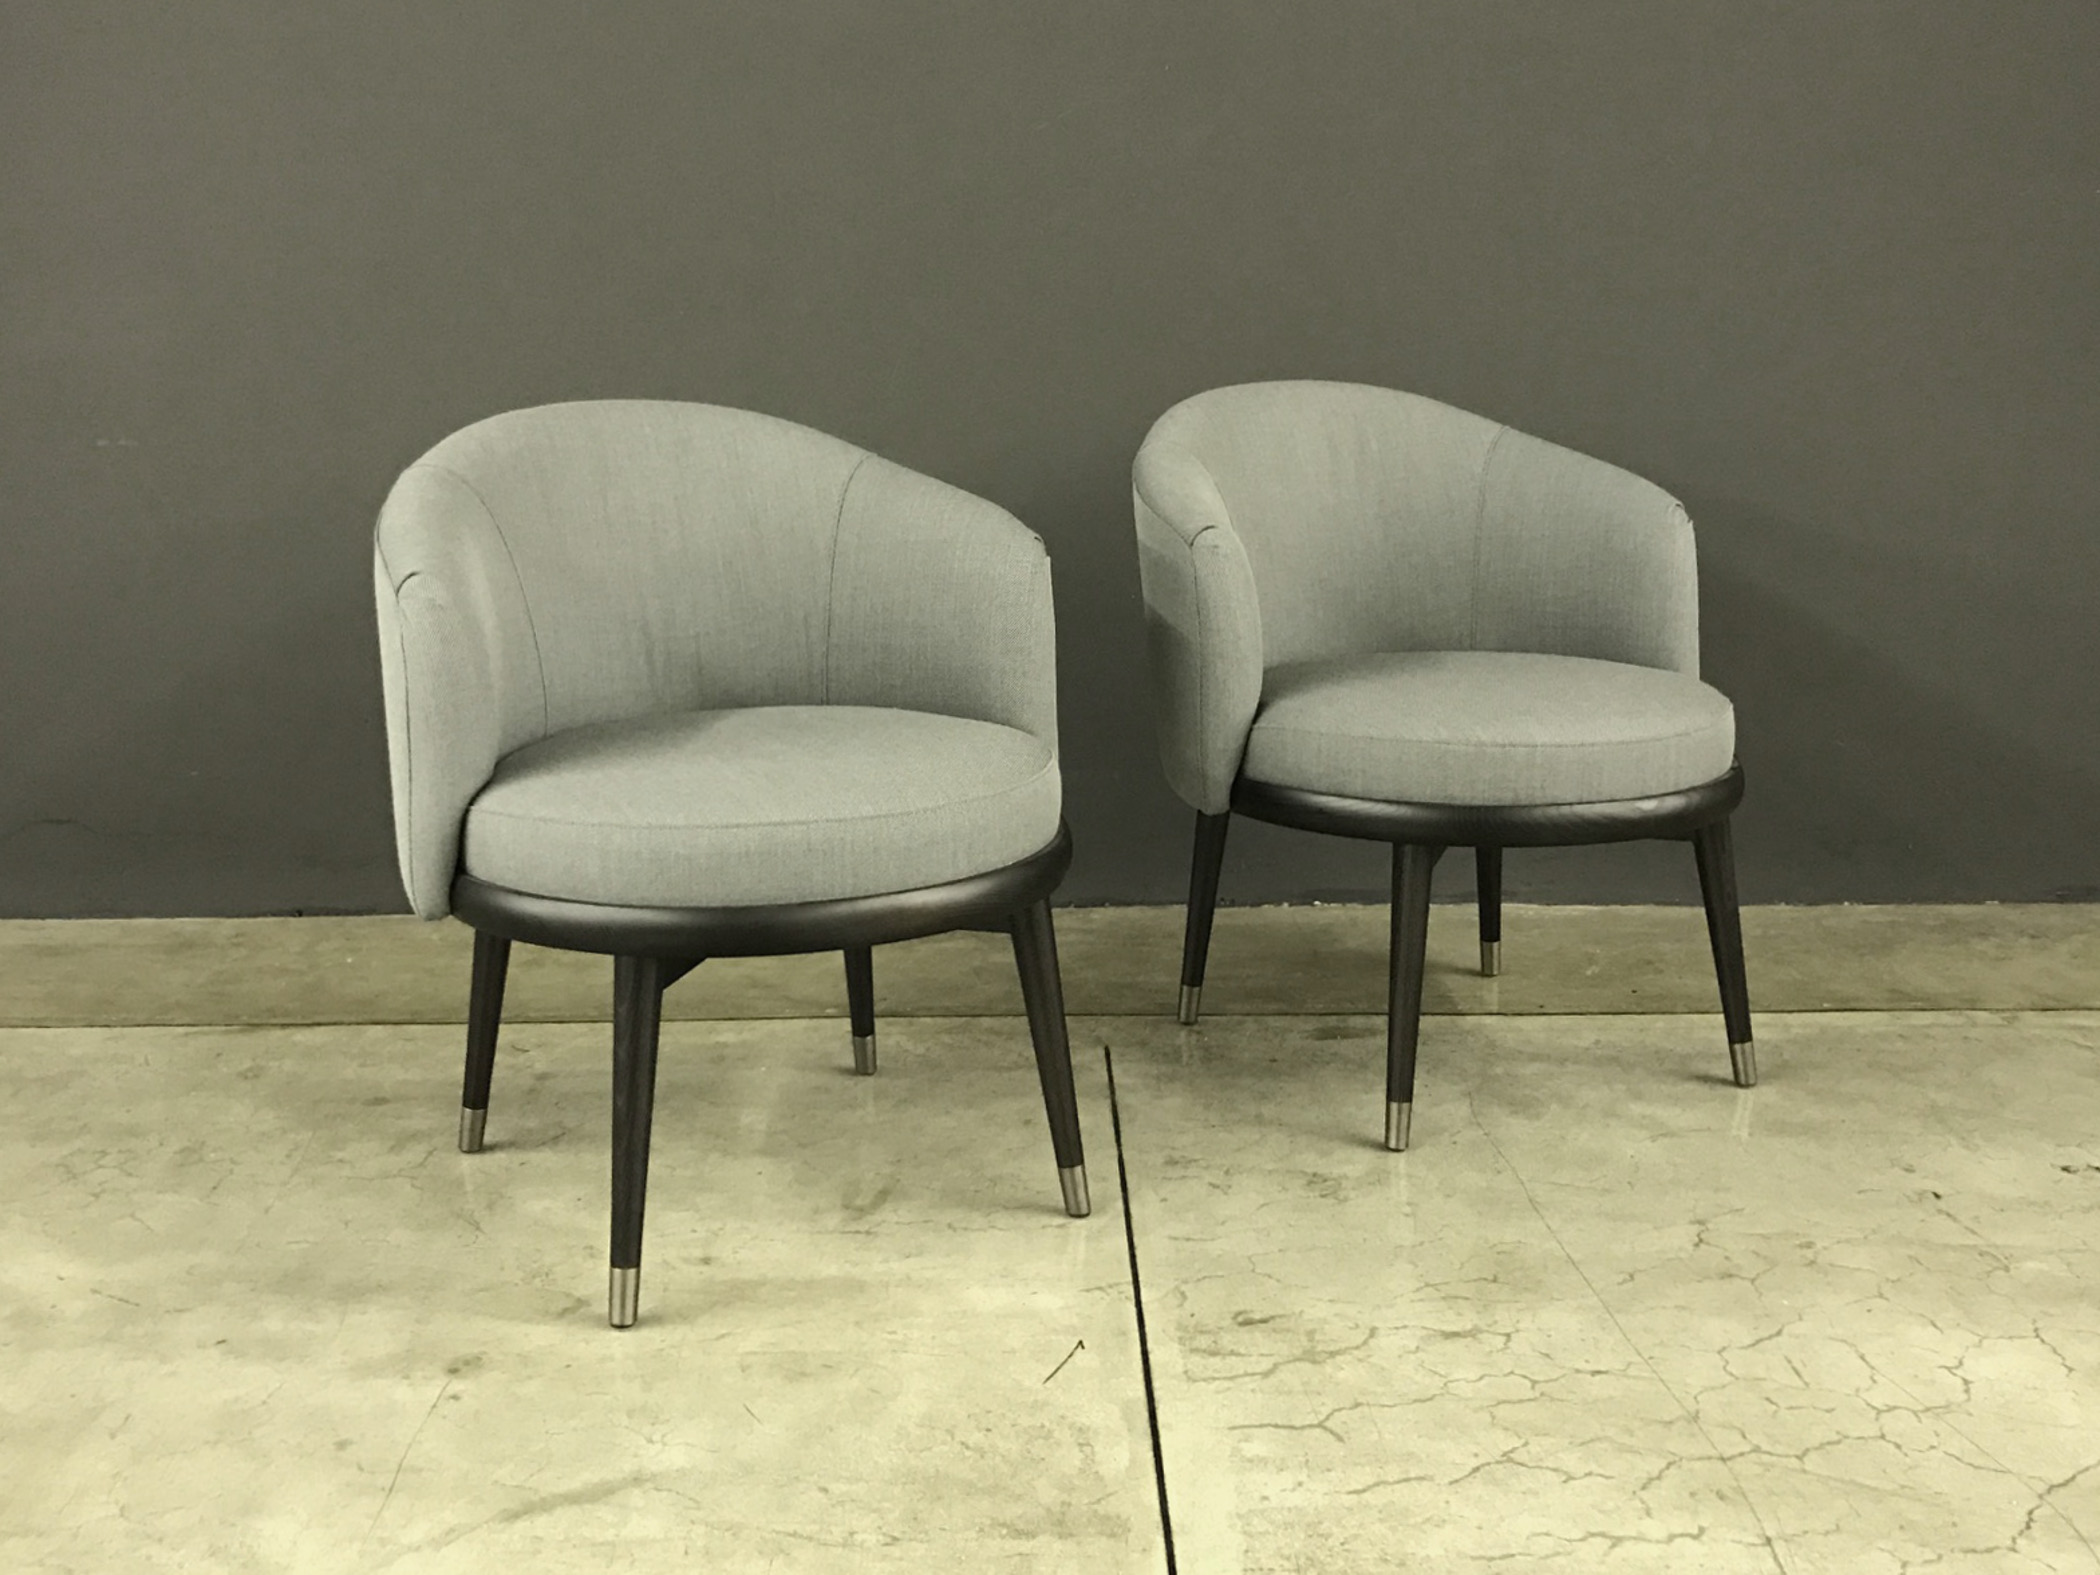 Small armchairs, Marelli Outlet